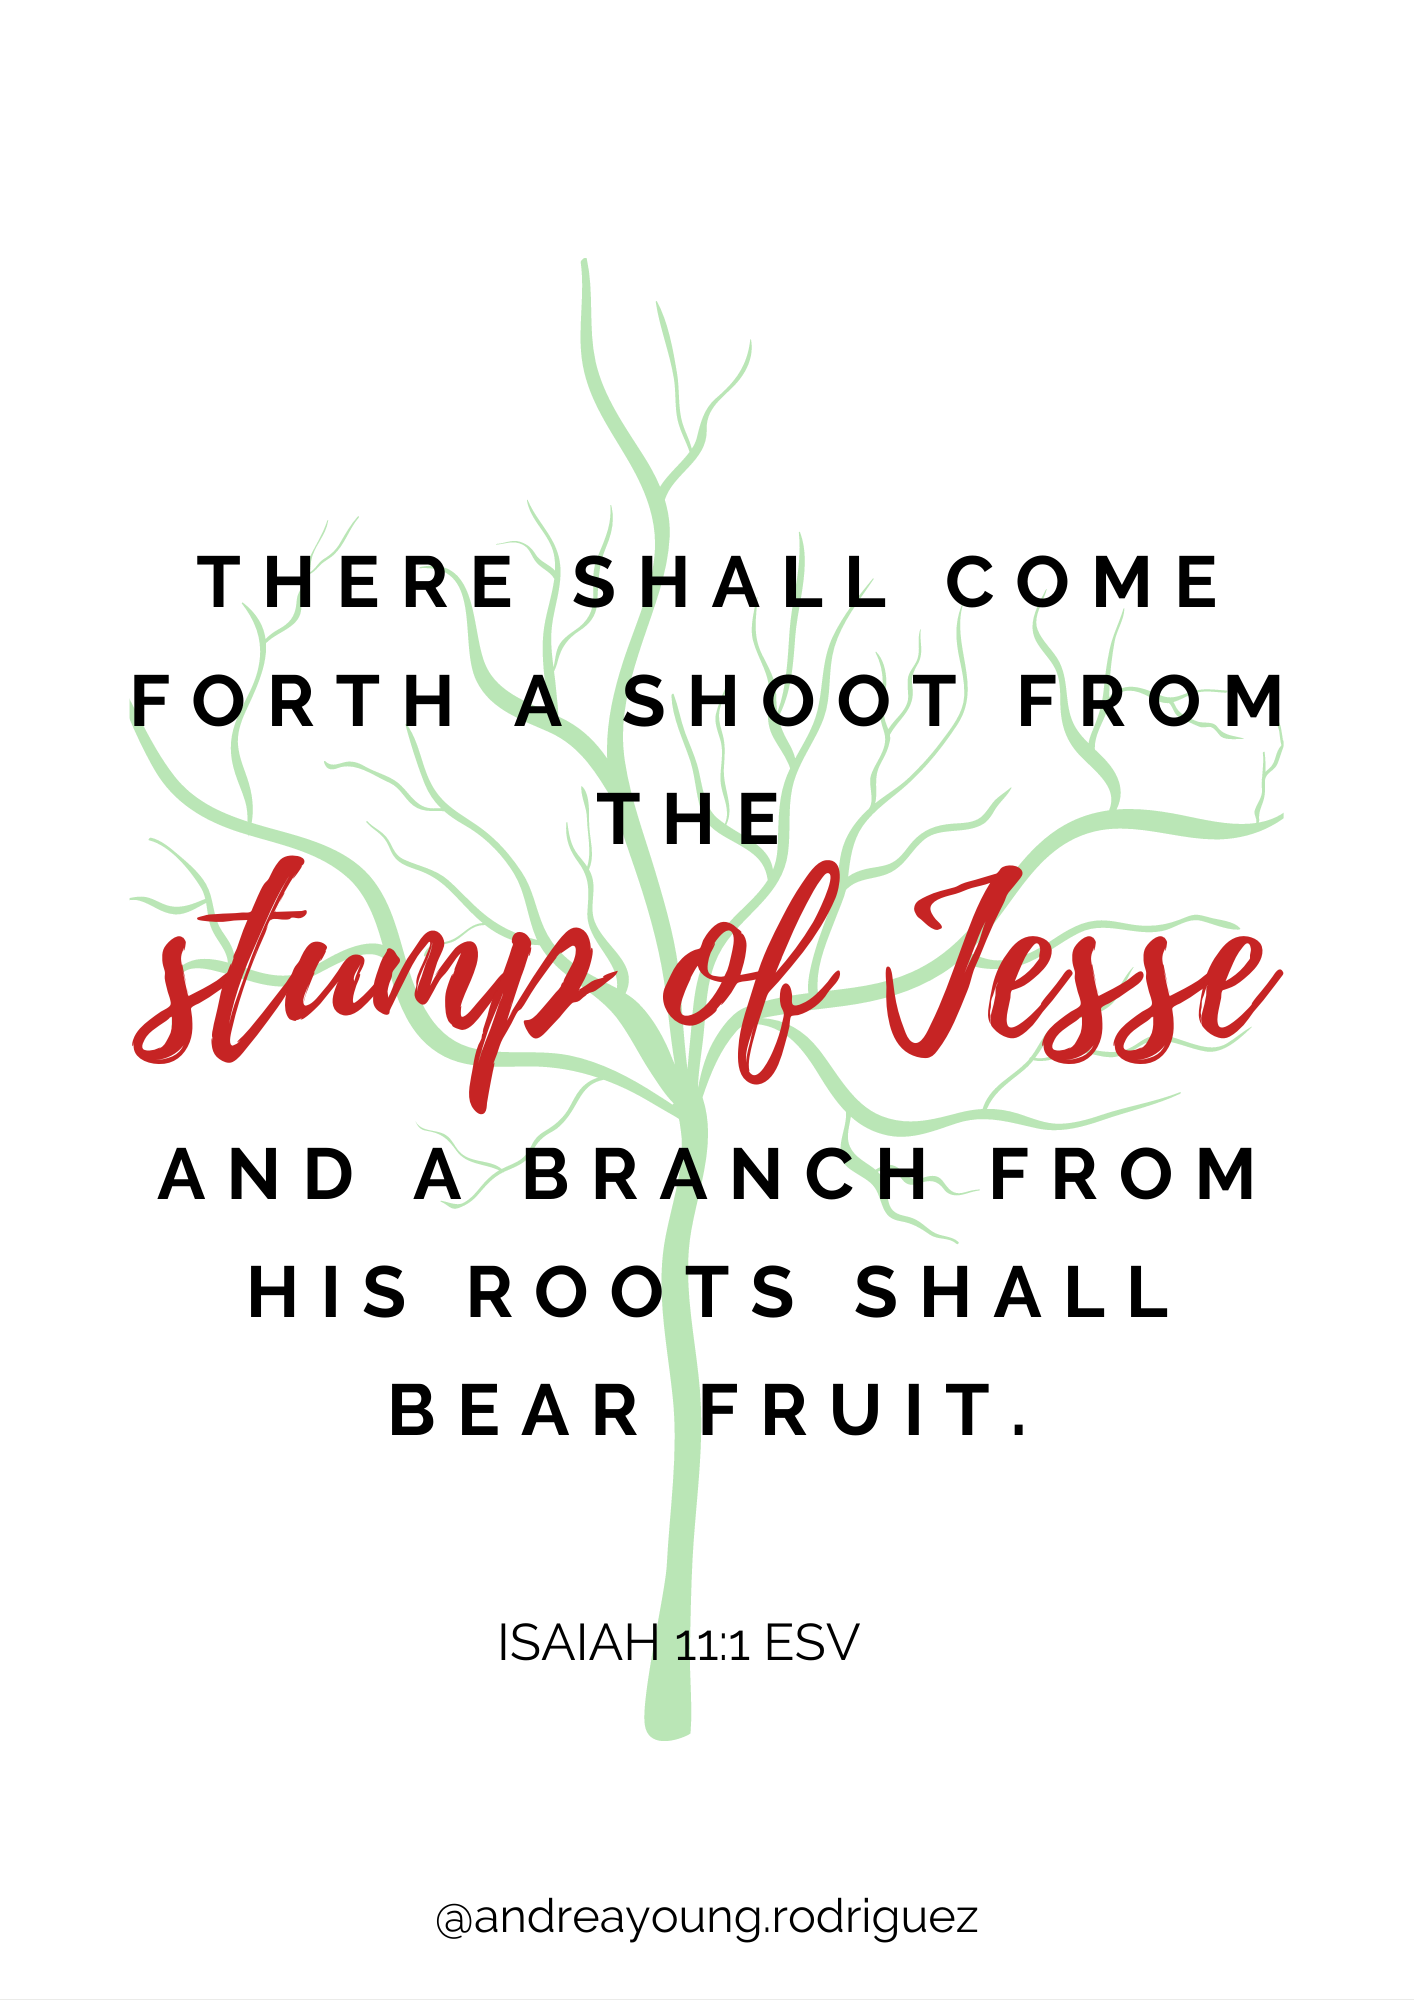 Image with the verse from Isaiah 11:1, from the stump of Jesse